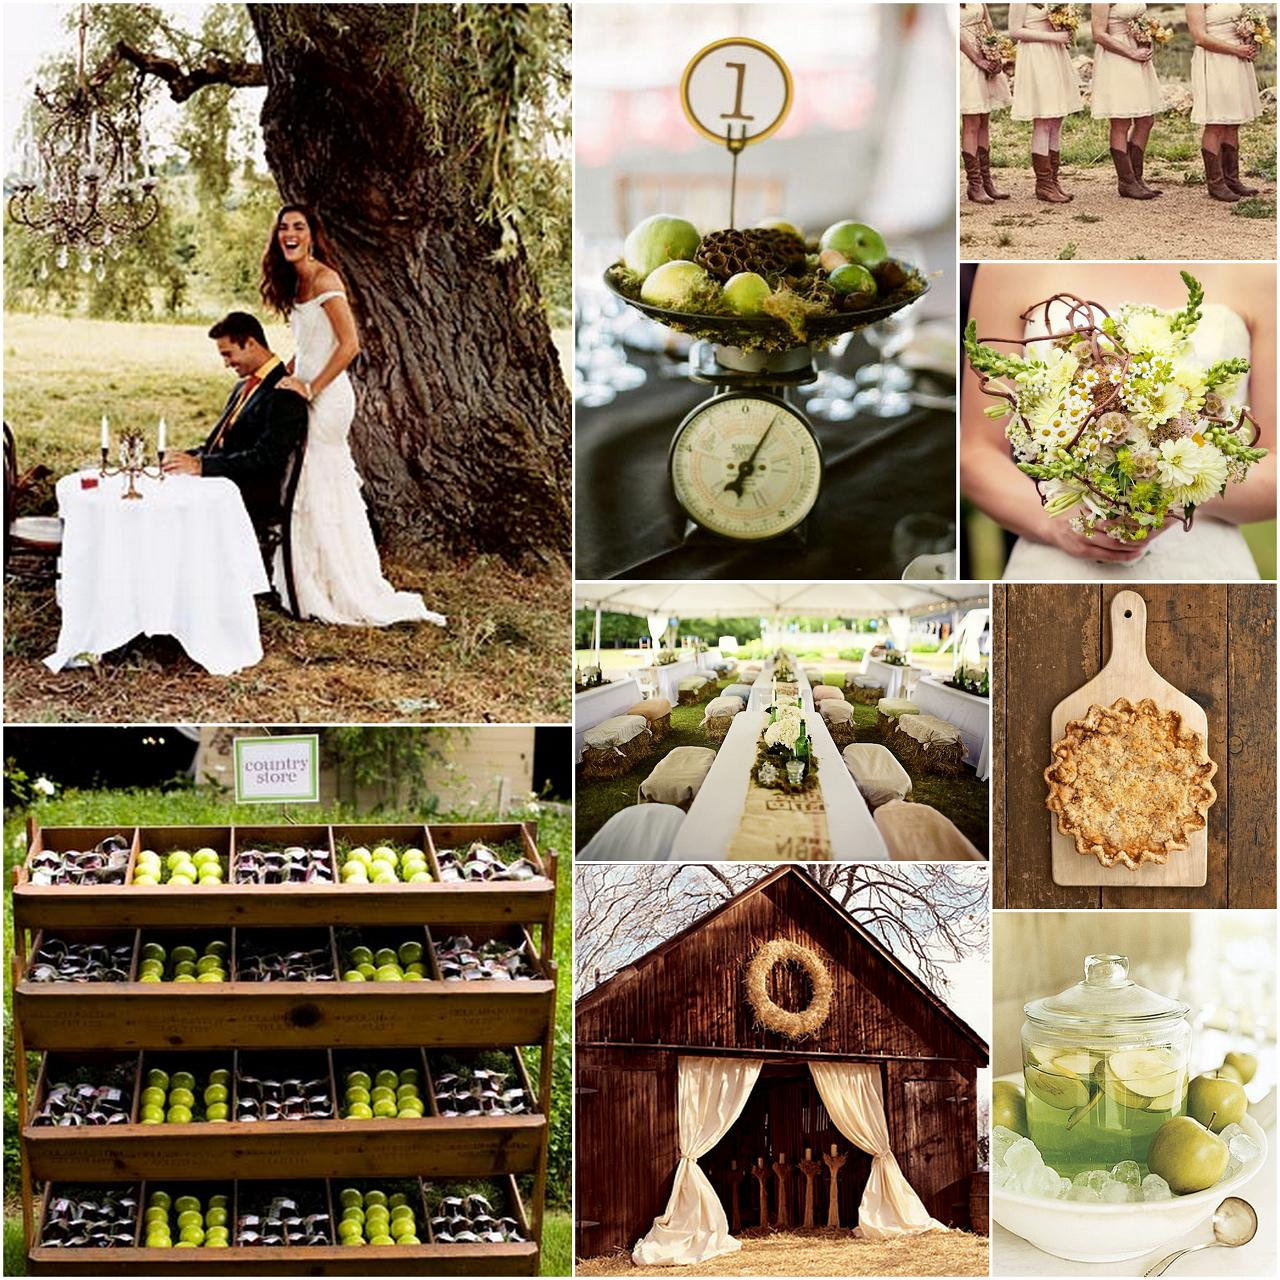 FOODS country wedding pics